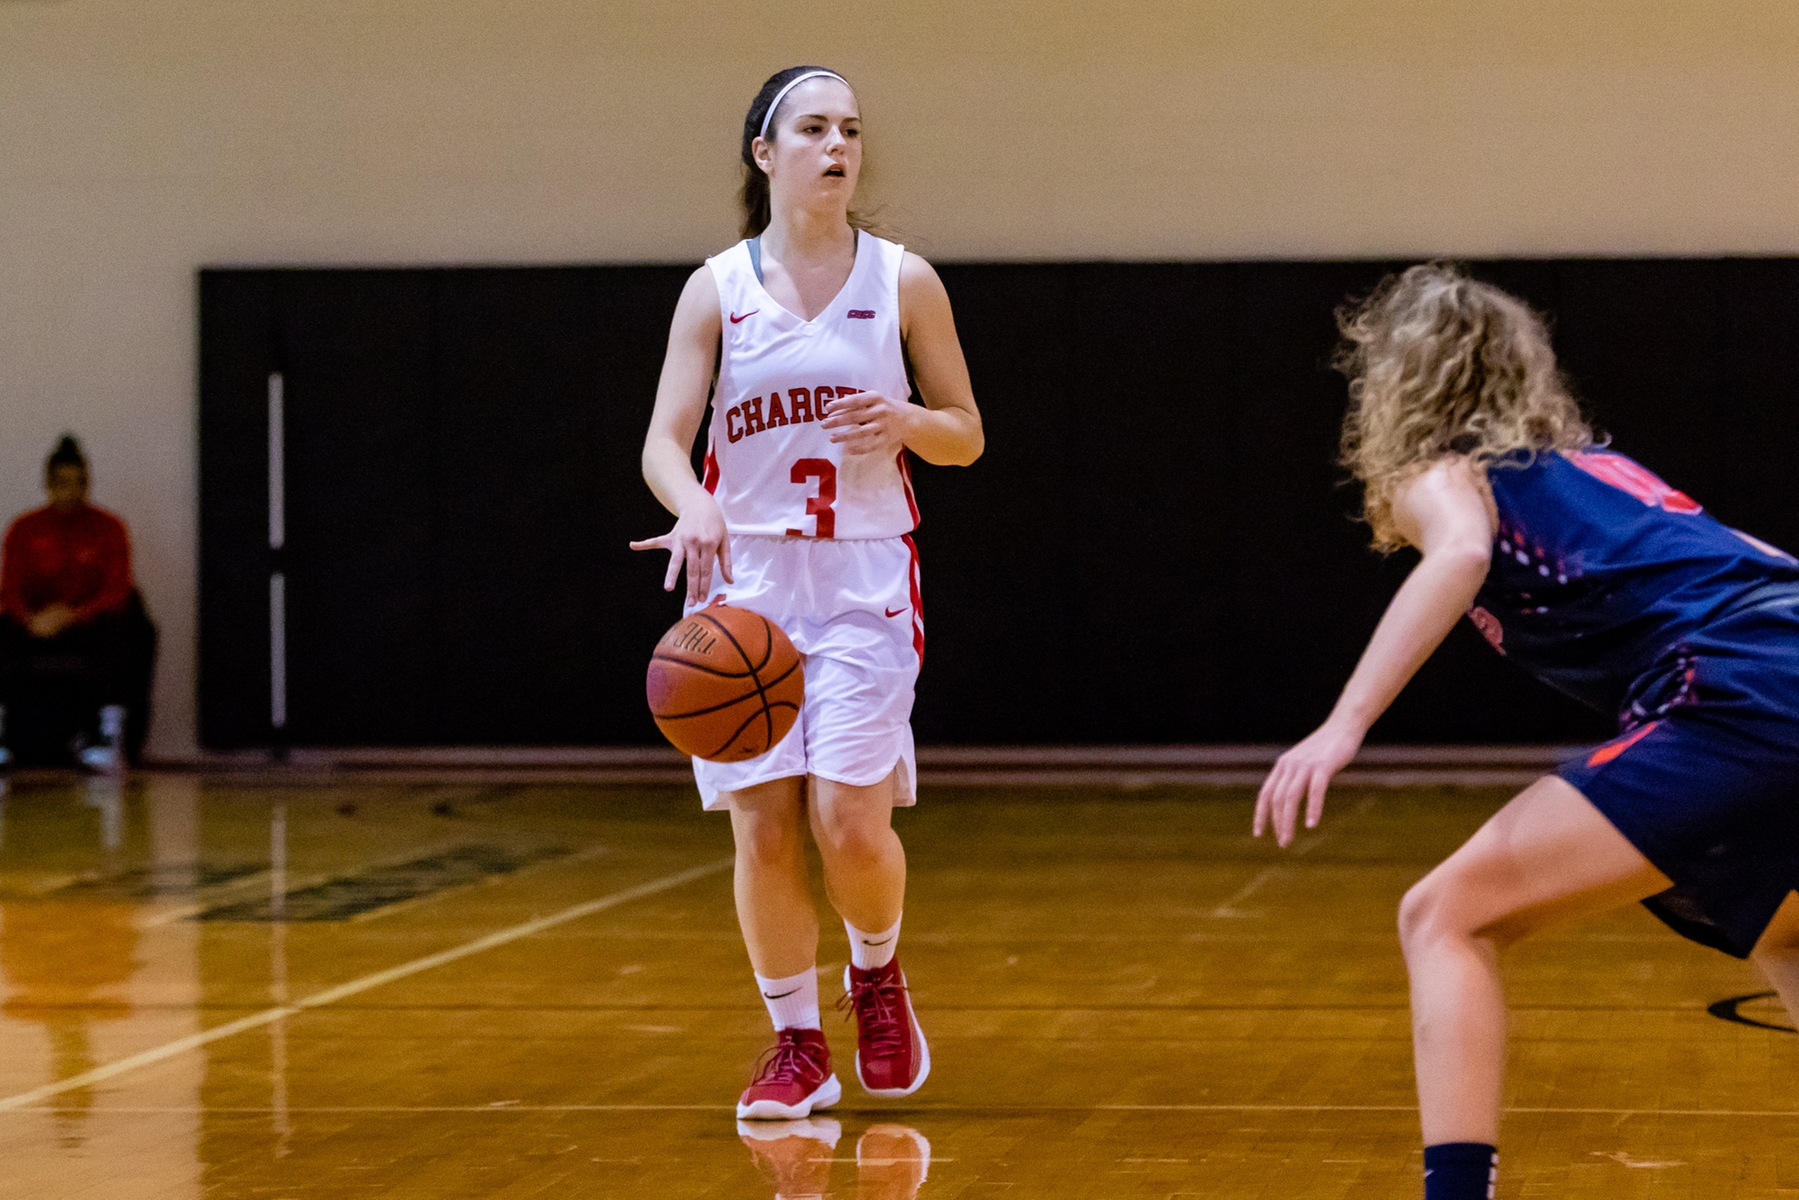 LADY CHARGERS DROP NON-CONFERENCE GAME TO ADELPHI